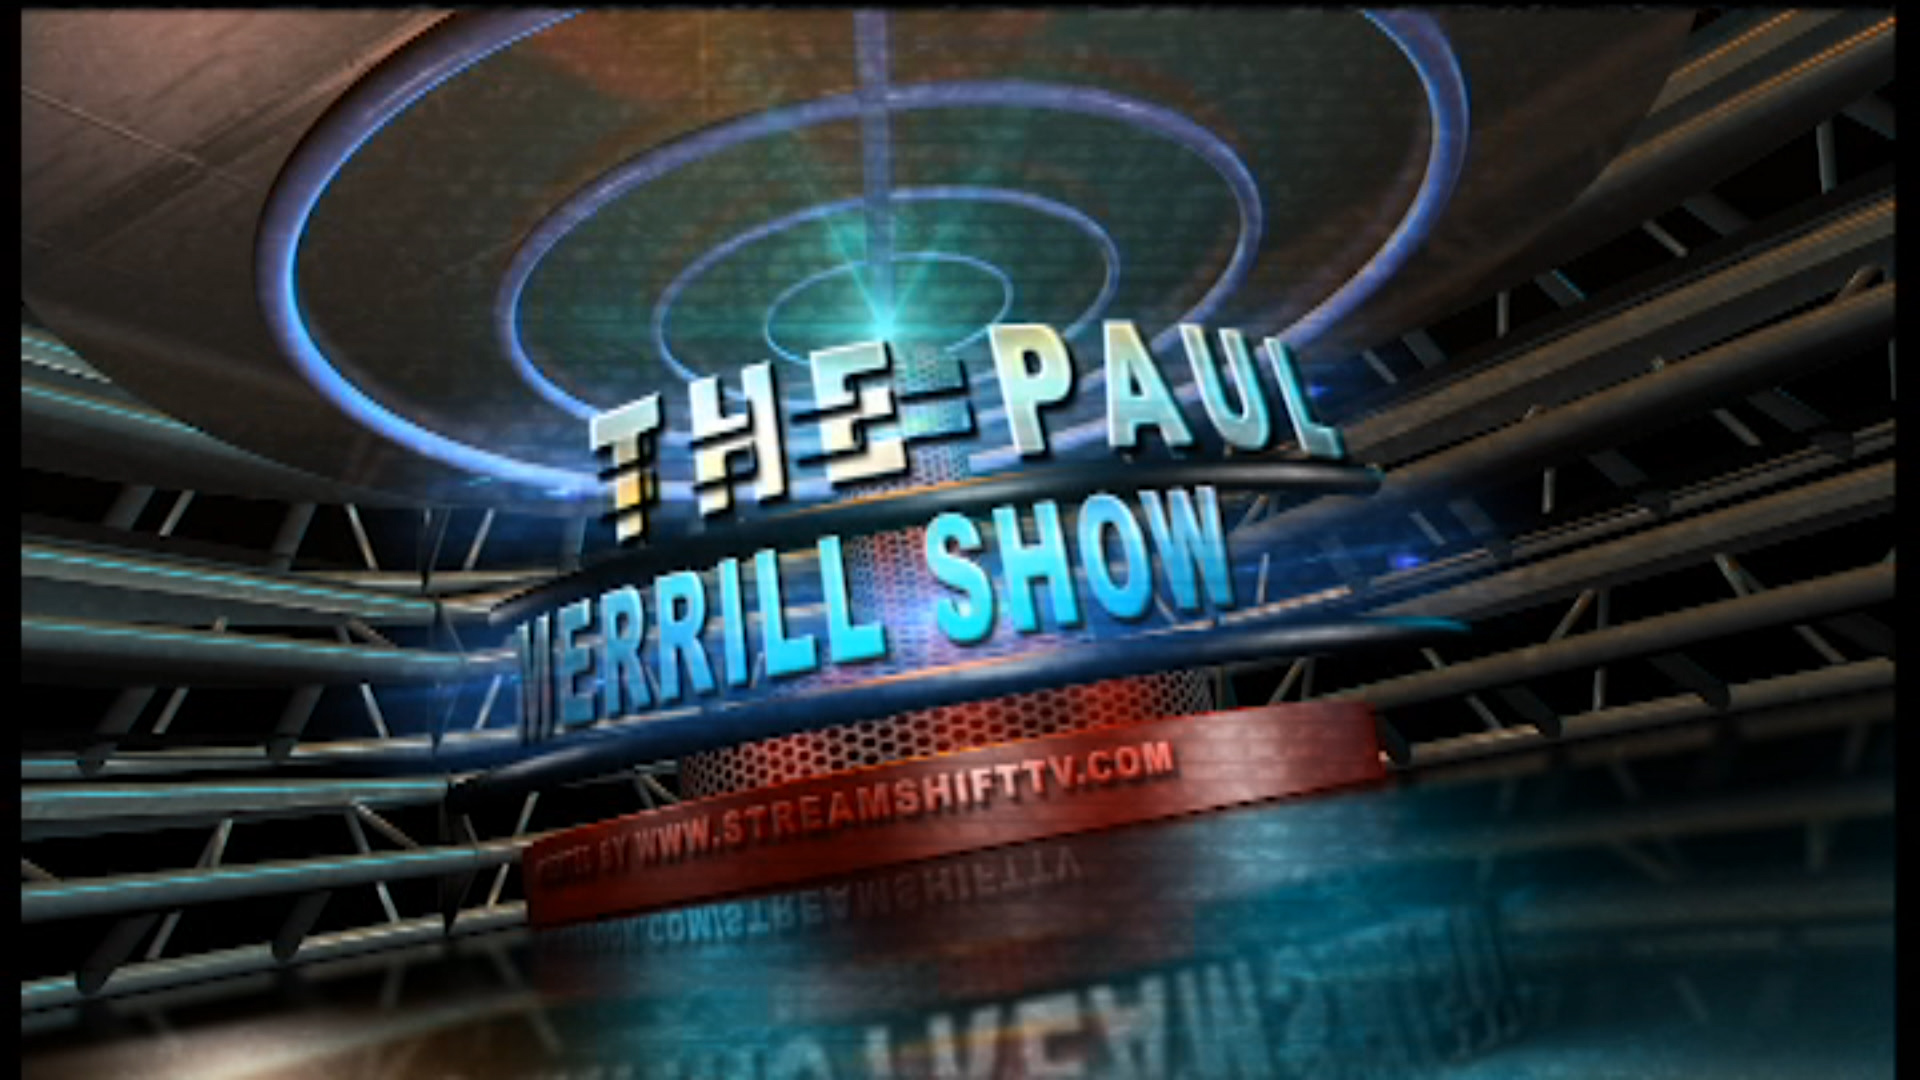 The Paul Merrill Show - August 6th, 2019